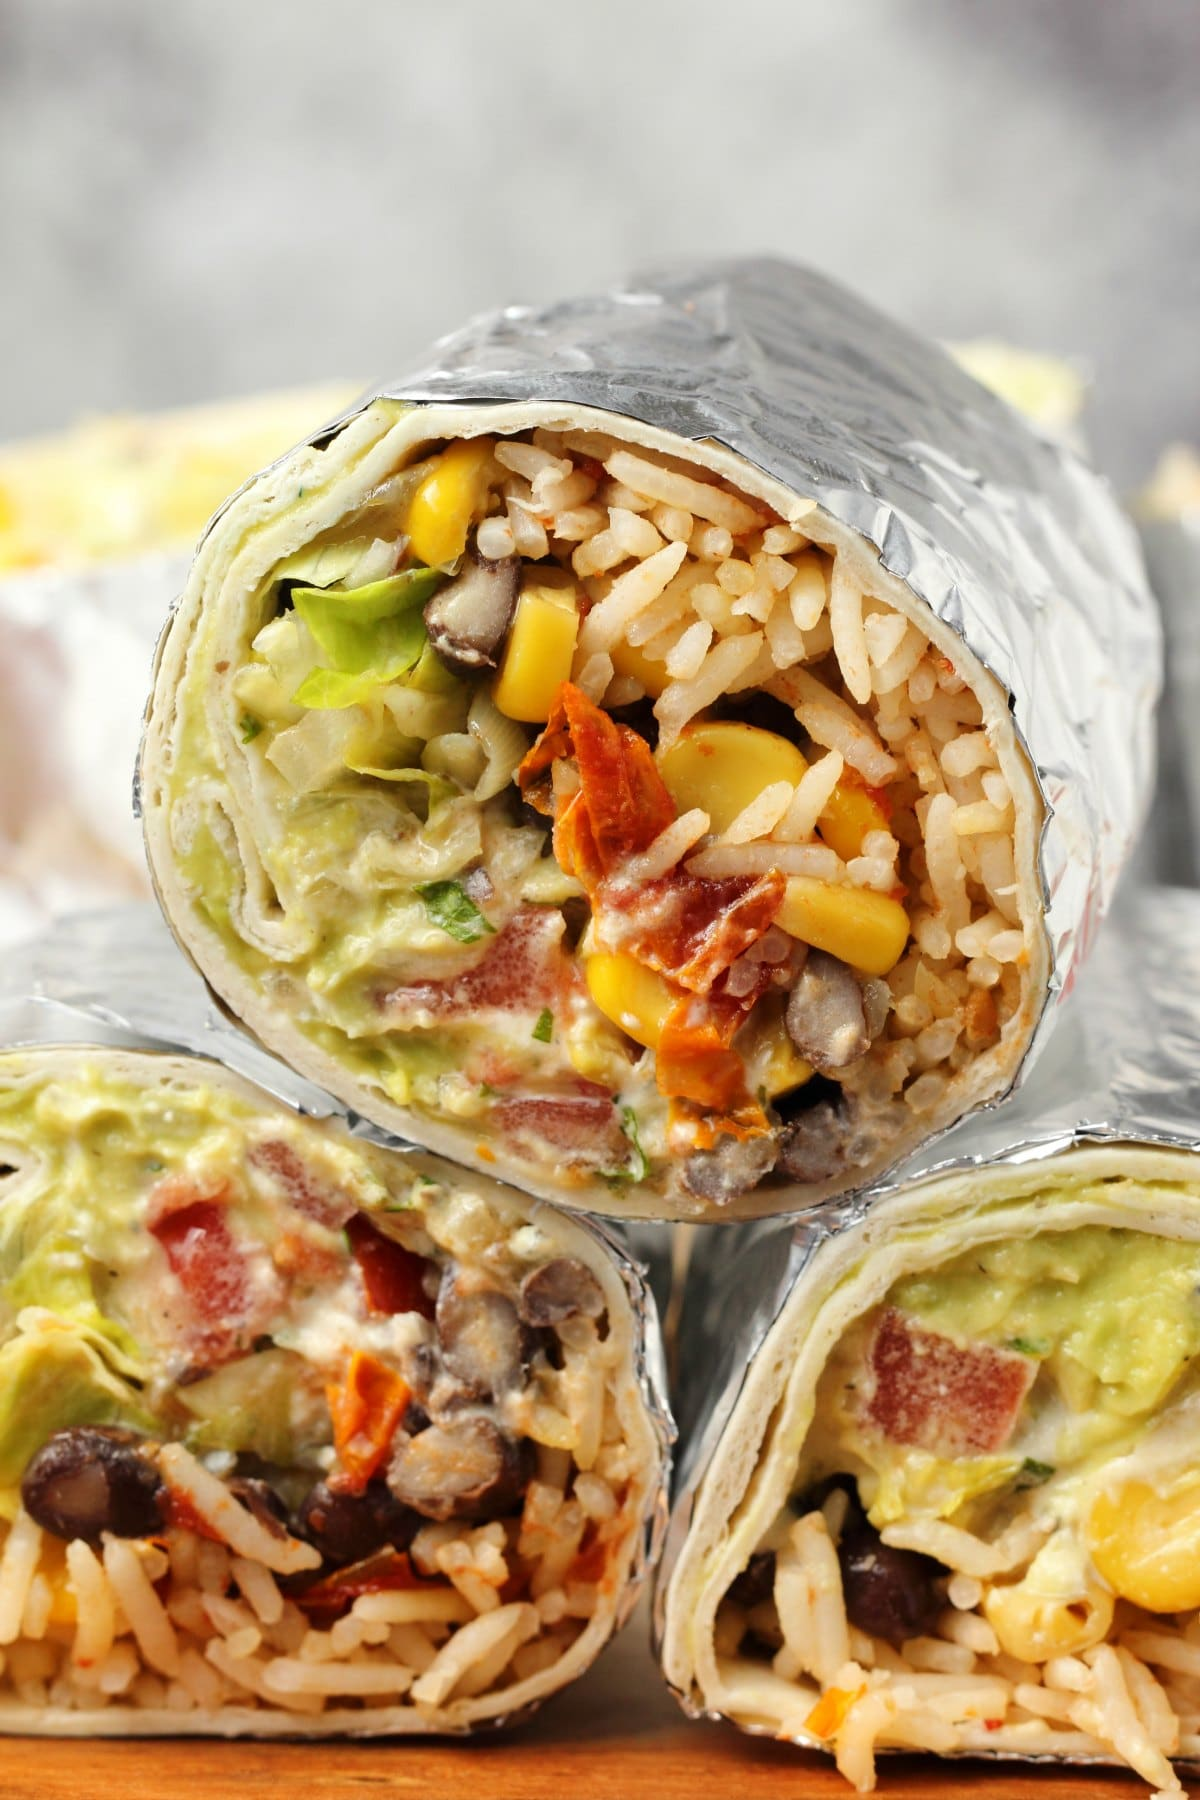 Vegan Burrito Loving It Vegan